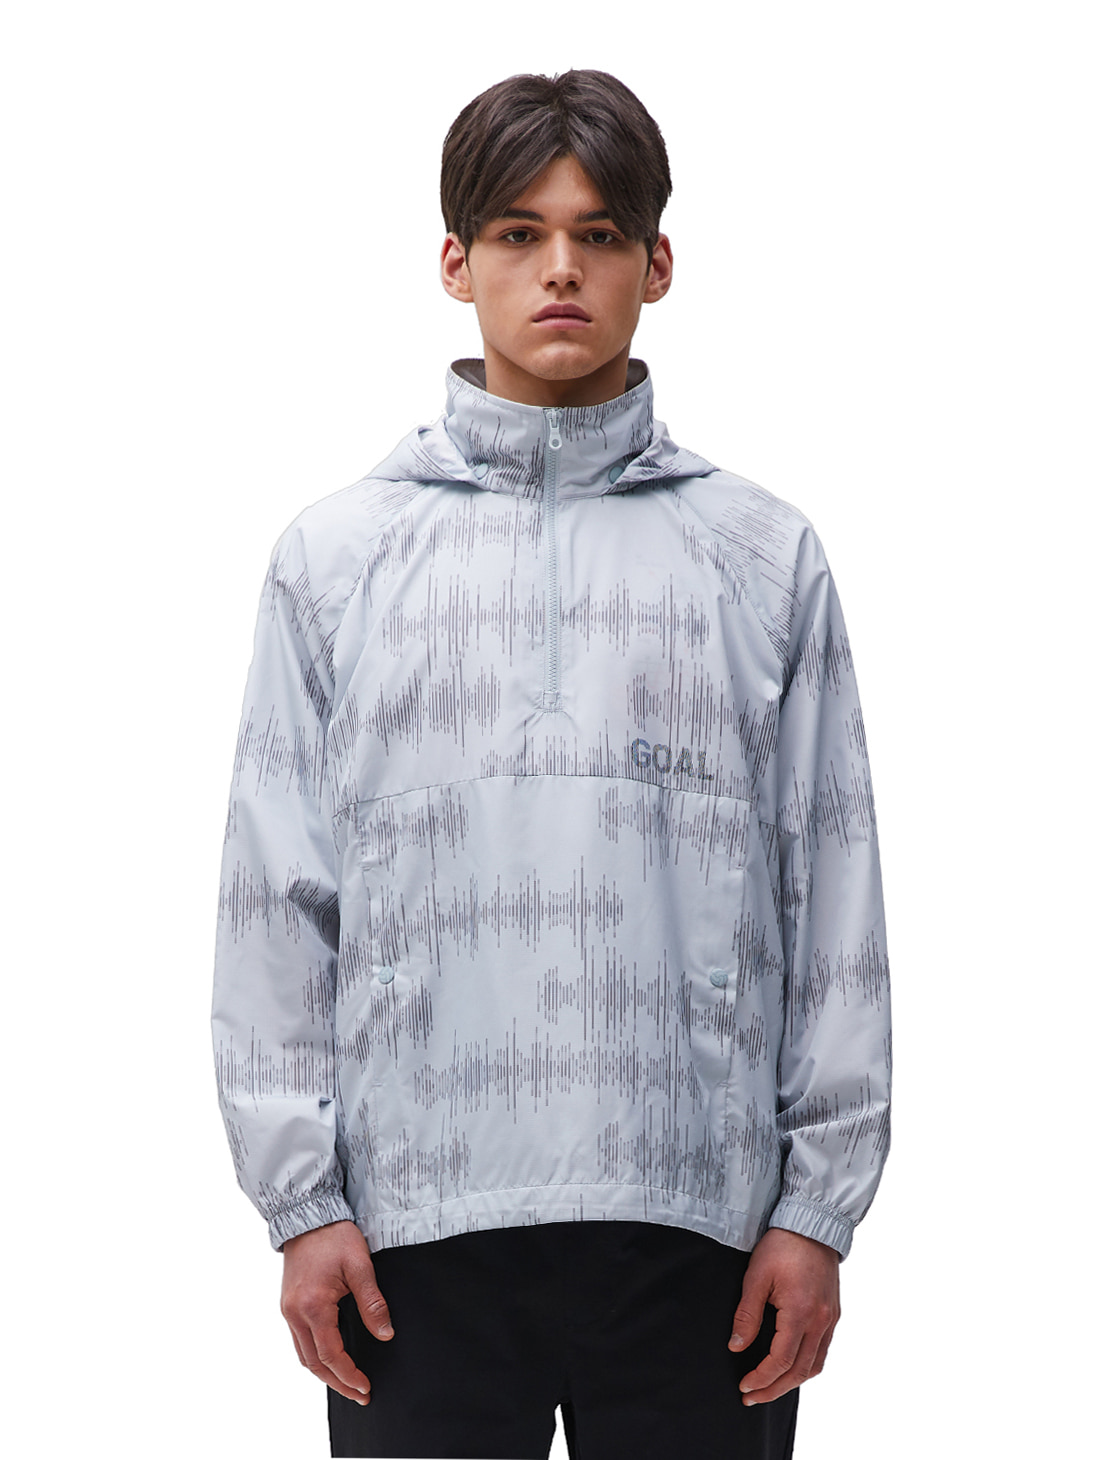 GOALSTUDIO LTG ANORAK - GREY